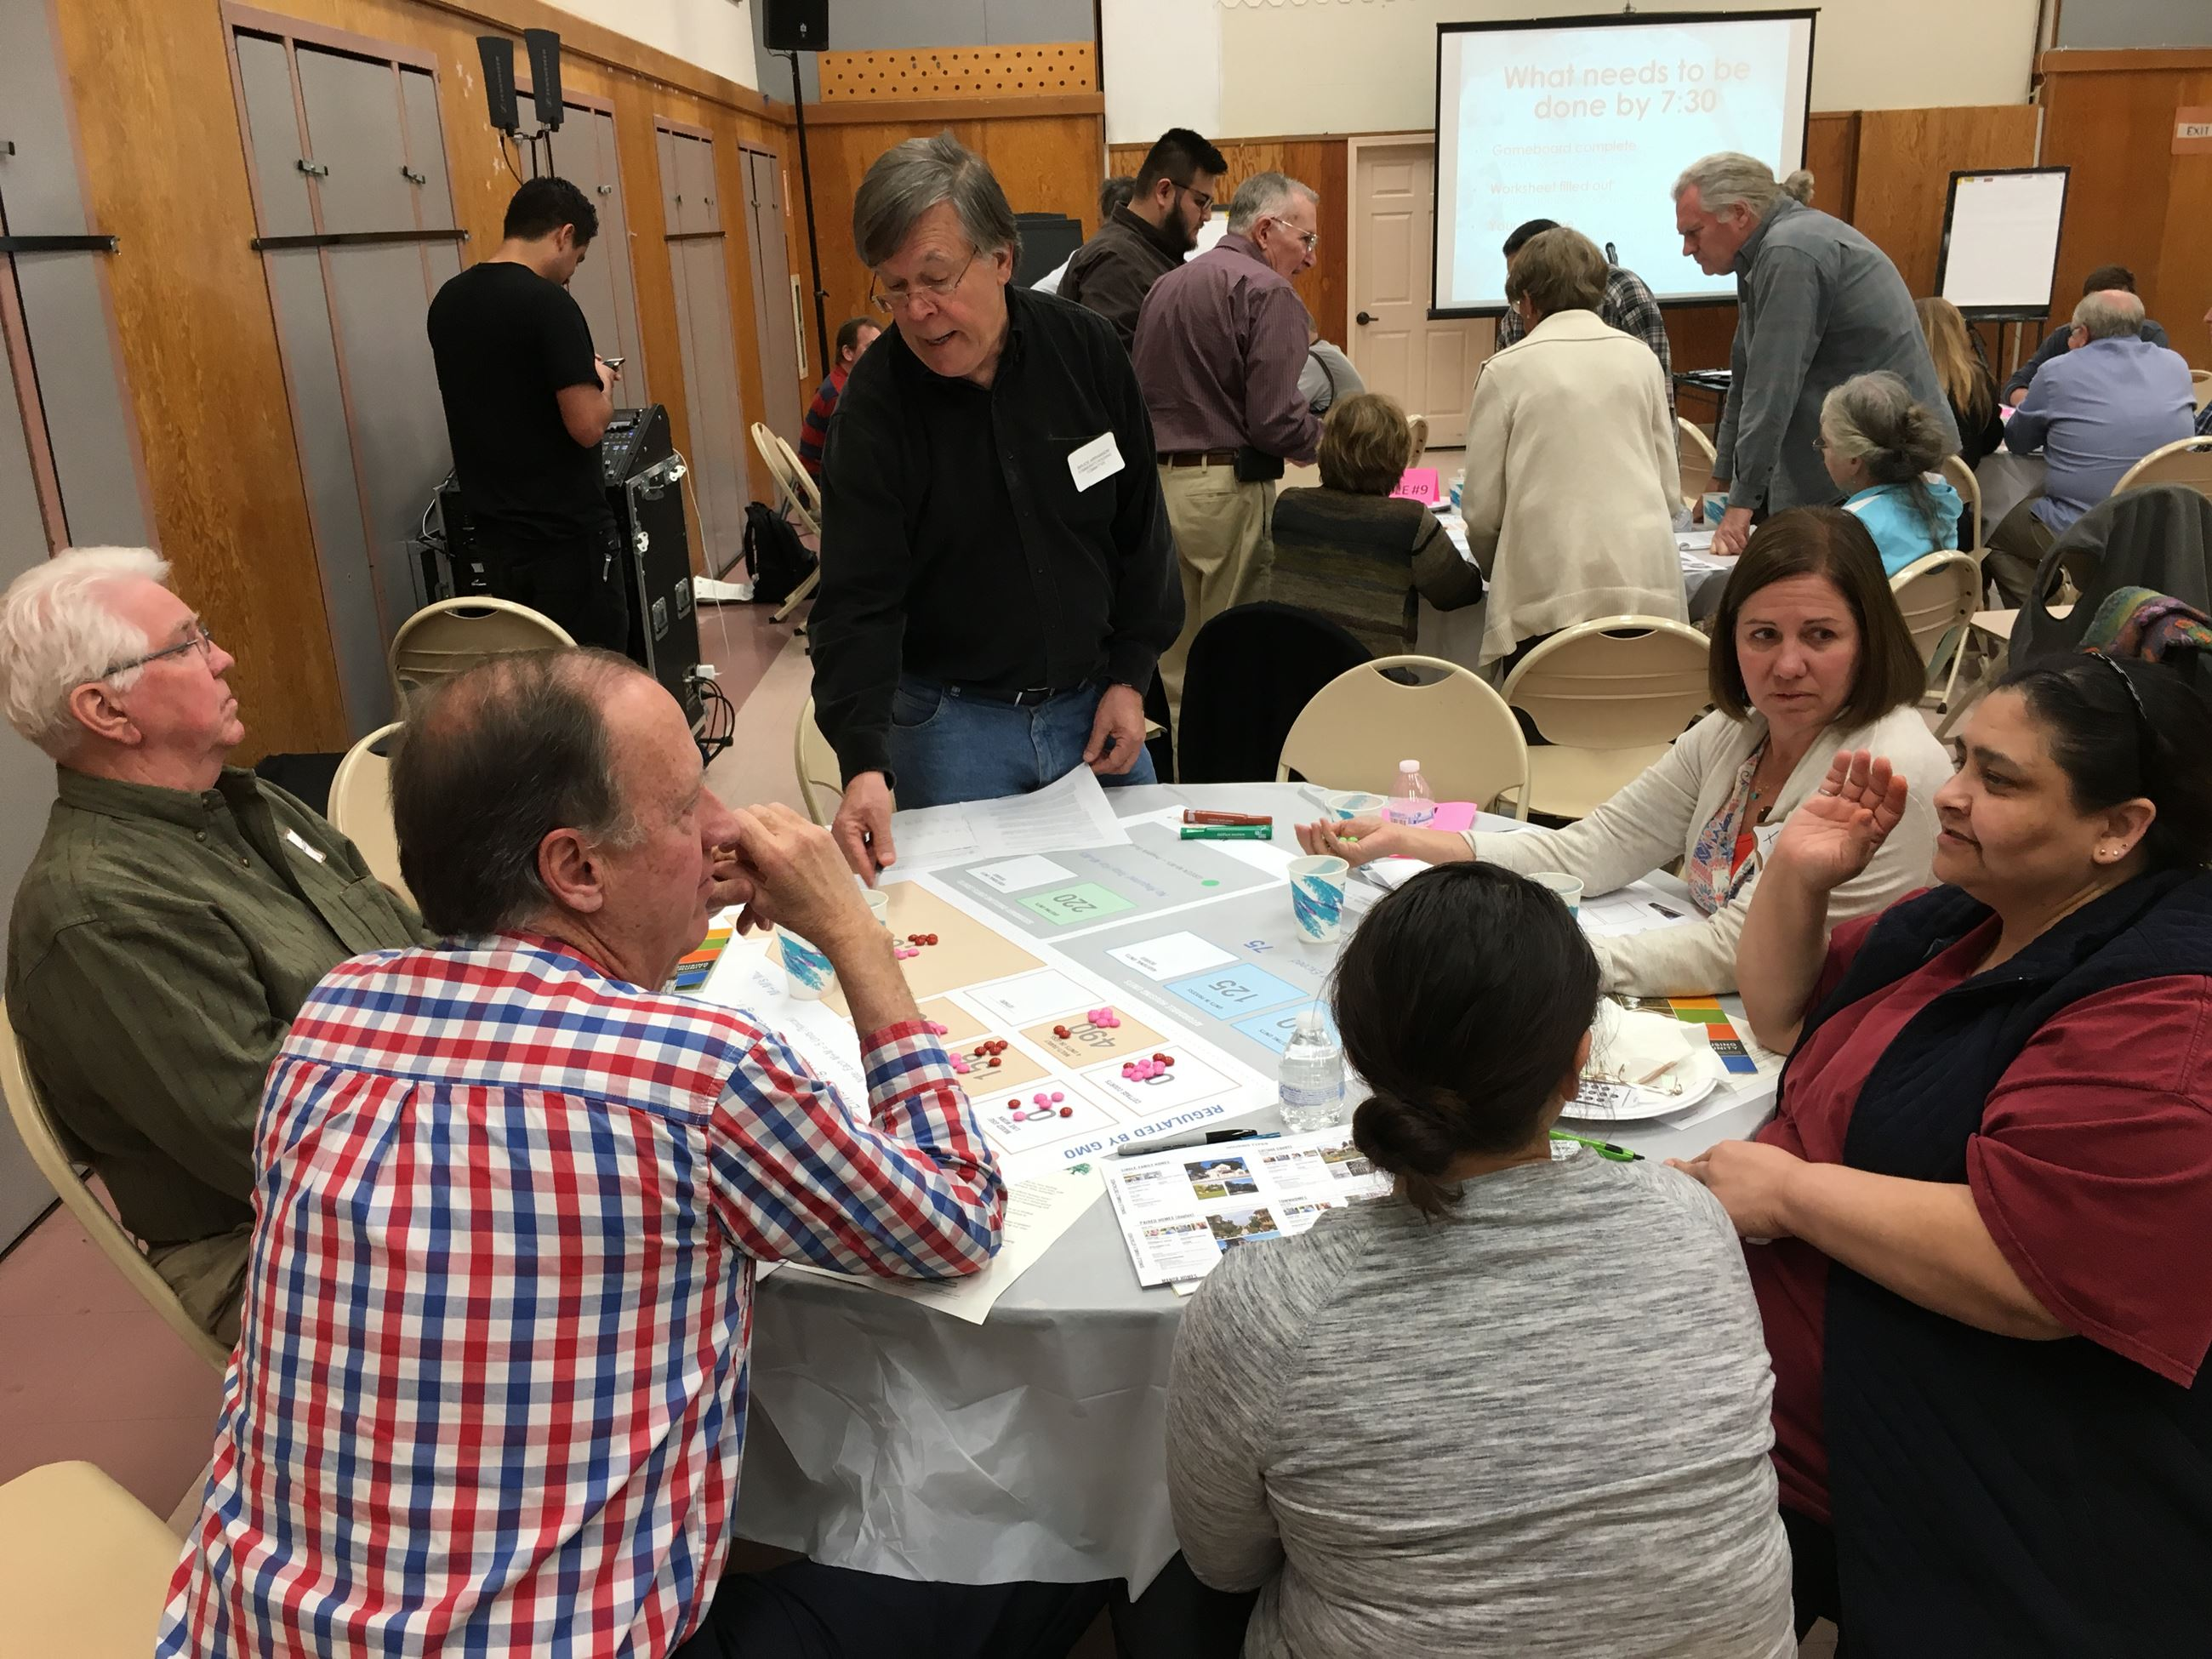 Members of the public particpanting in the group work activity